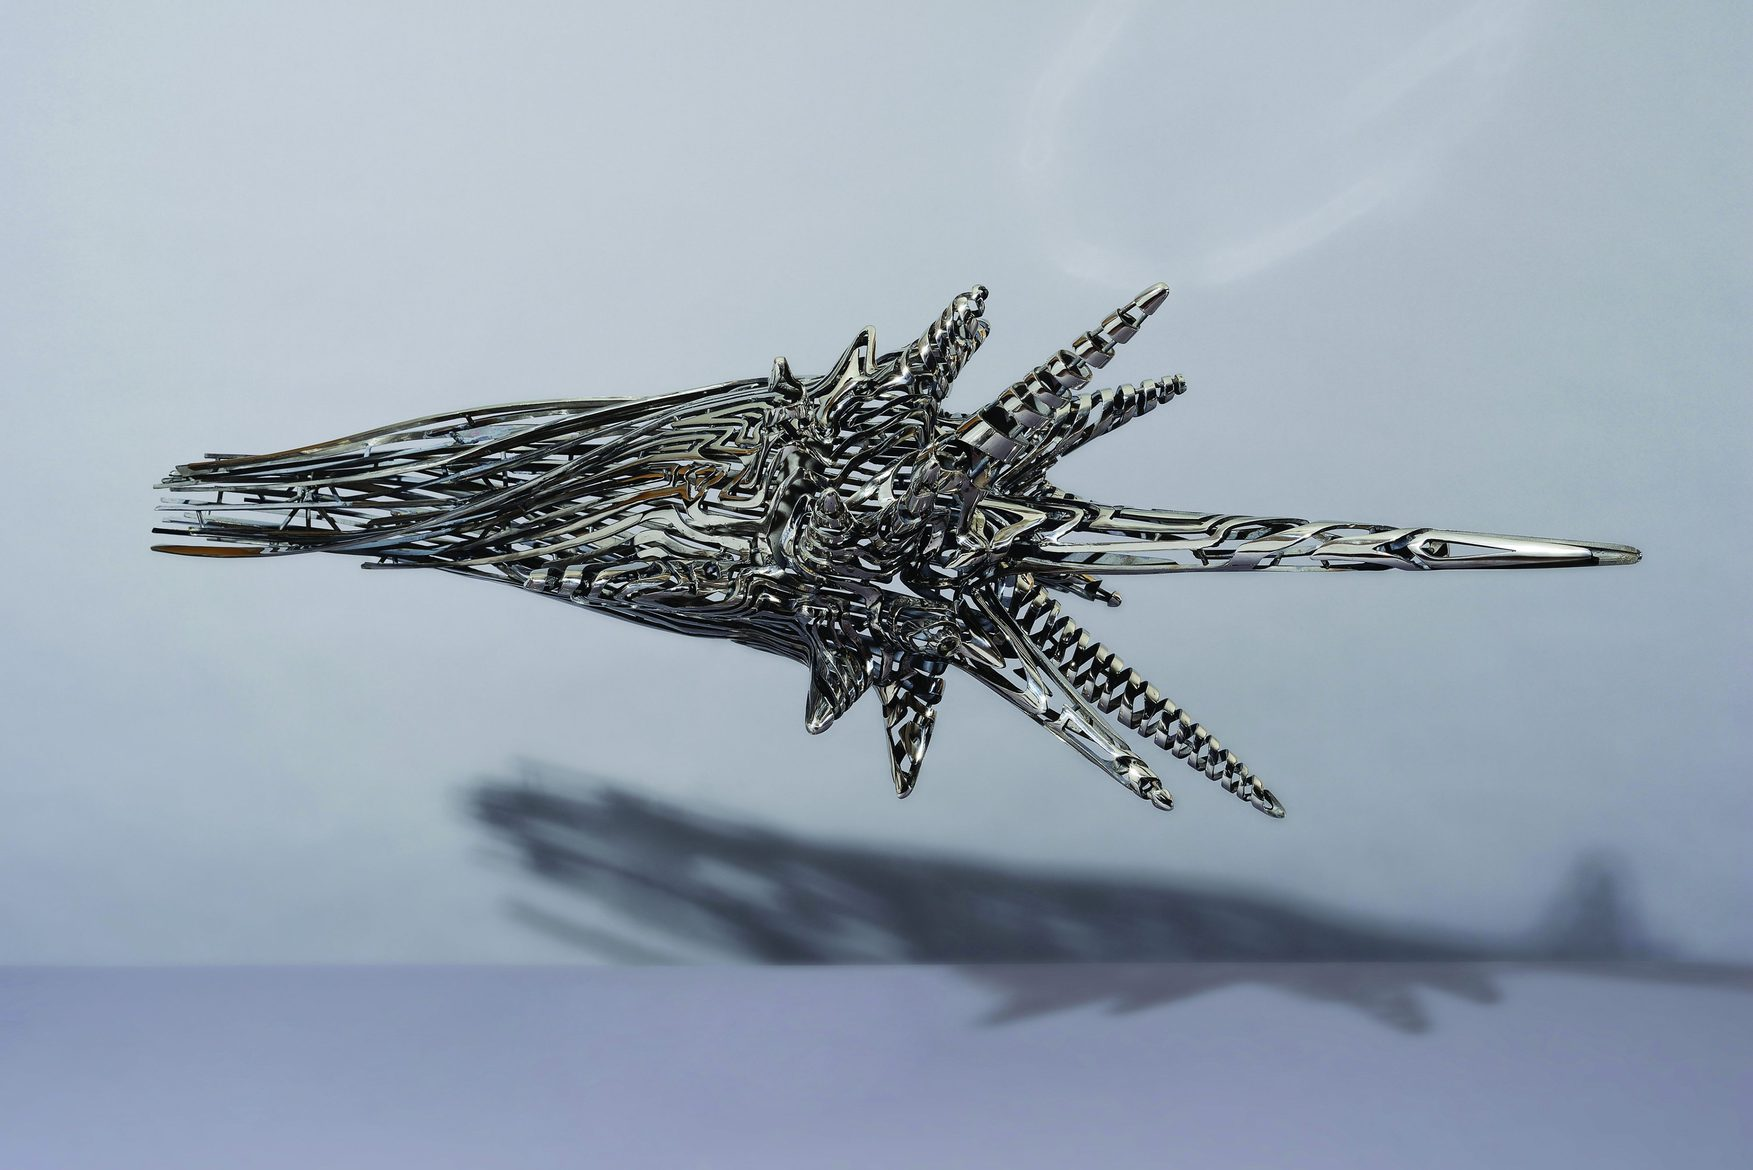 'Come to the Edge 4', 2012, stainless steel, 61 x 137 x 61 cm, edition 1 of 5 + 1AP